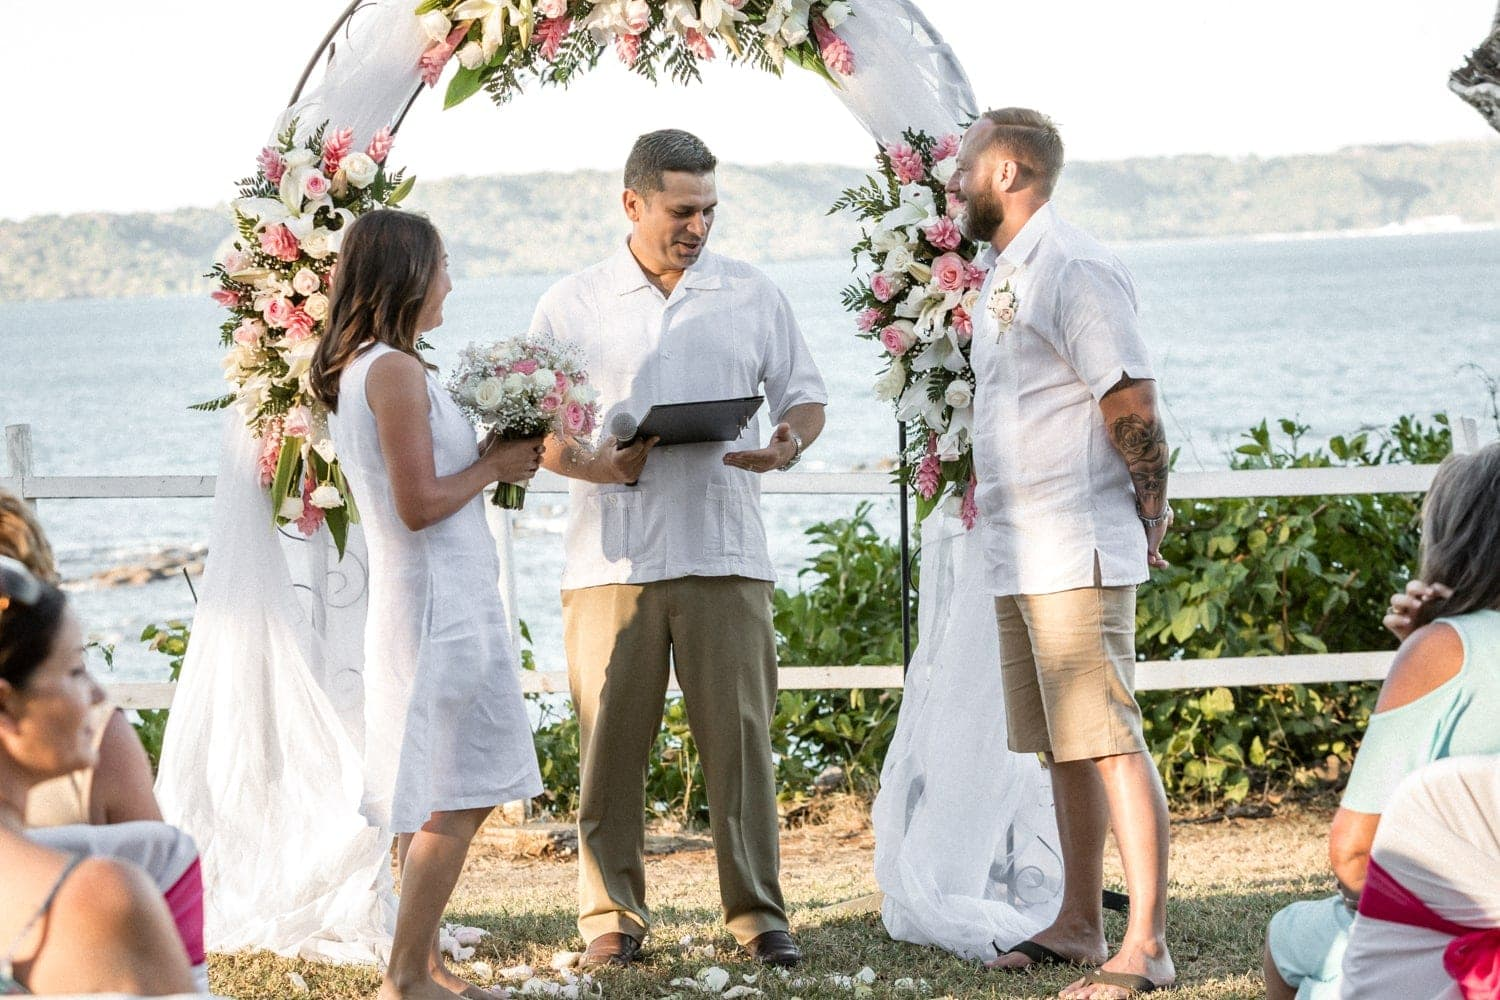 Wedding ceremony at Occidental Papagayo on hill overlooking ocean.